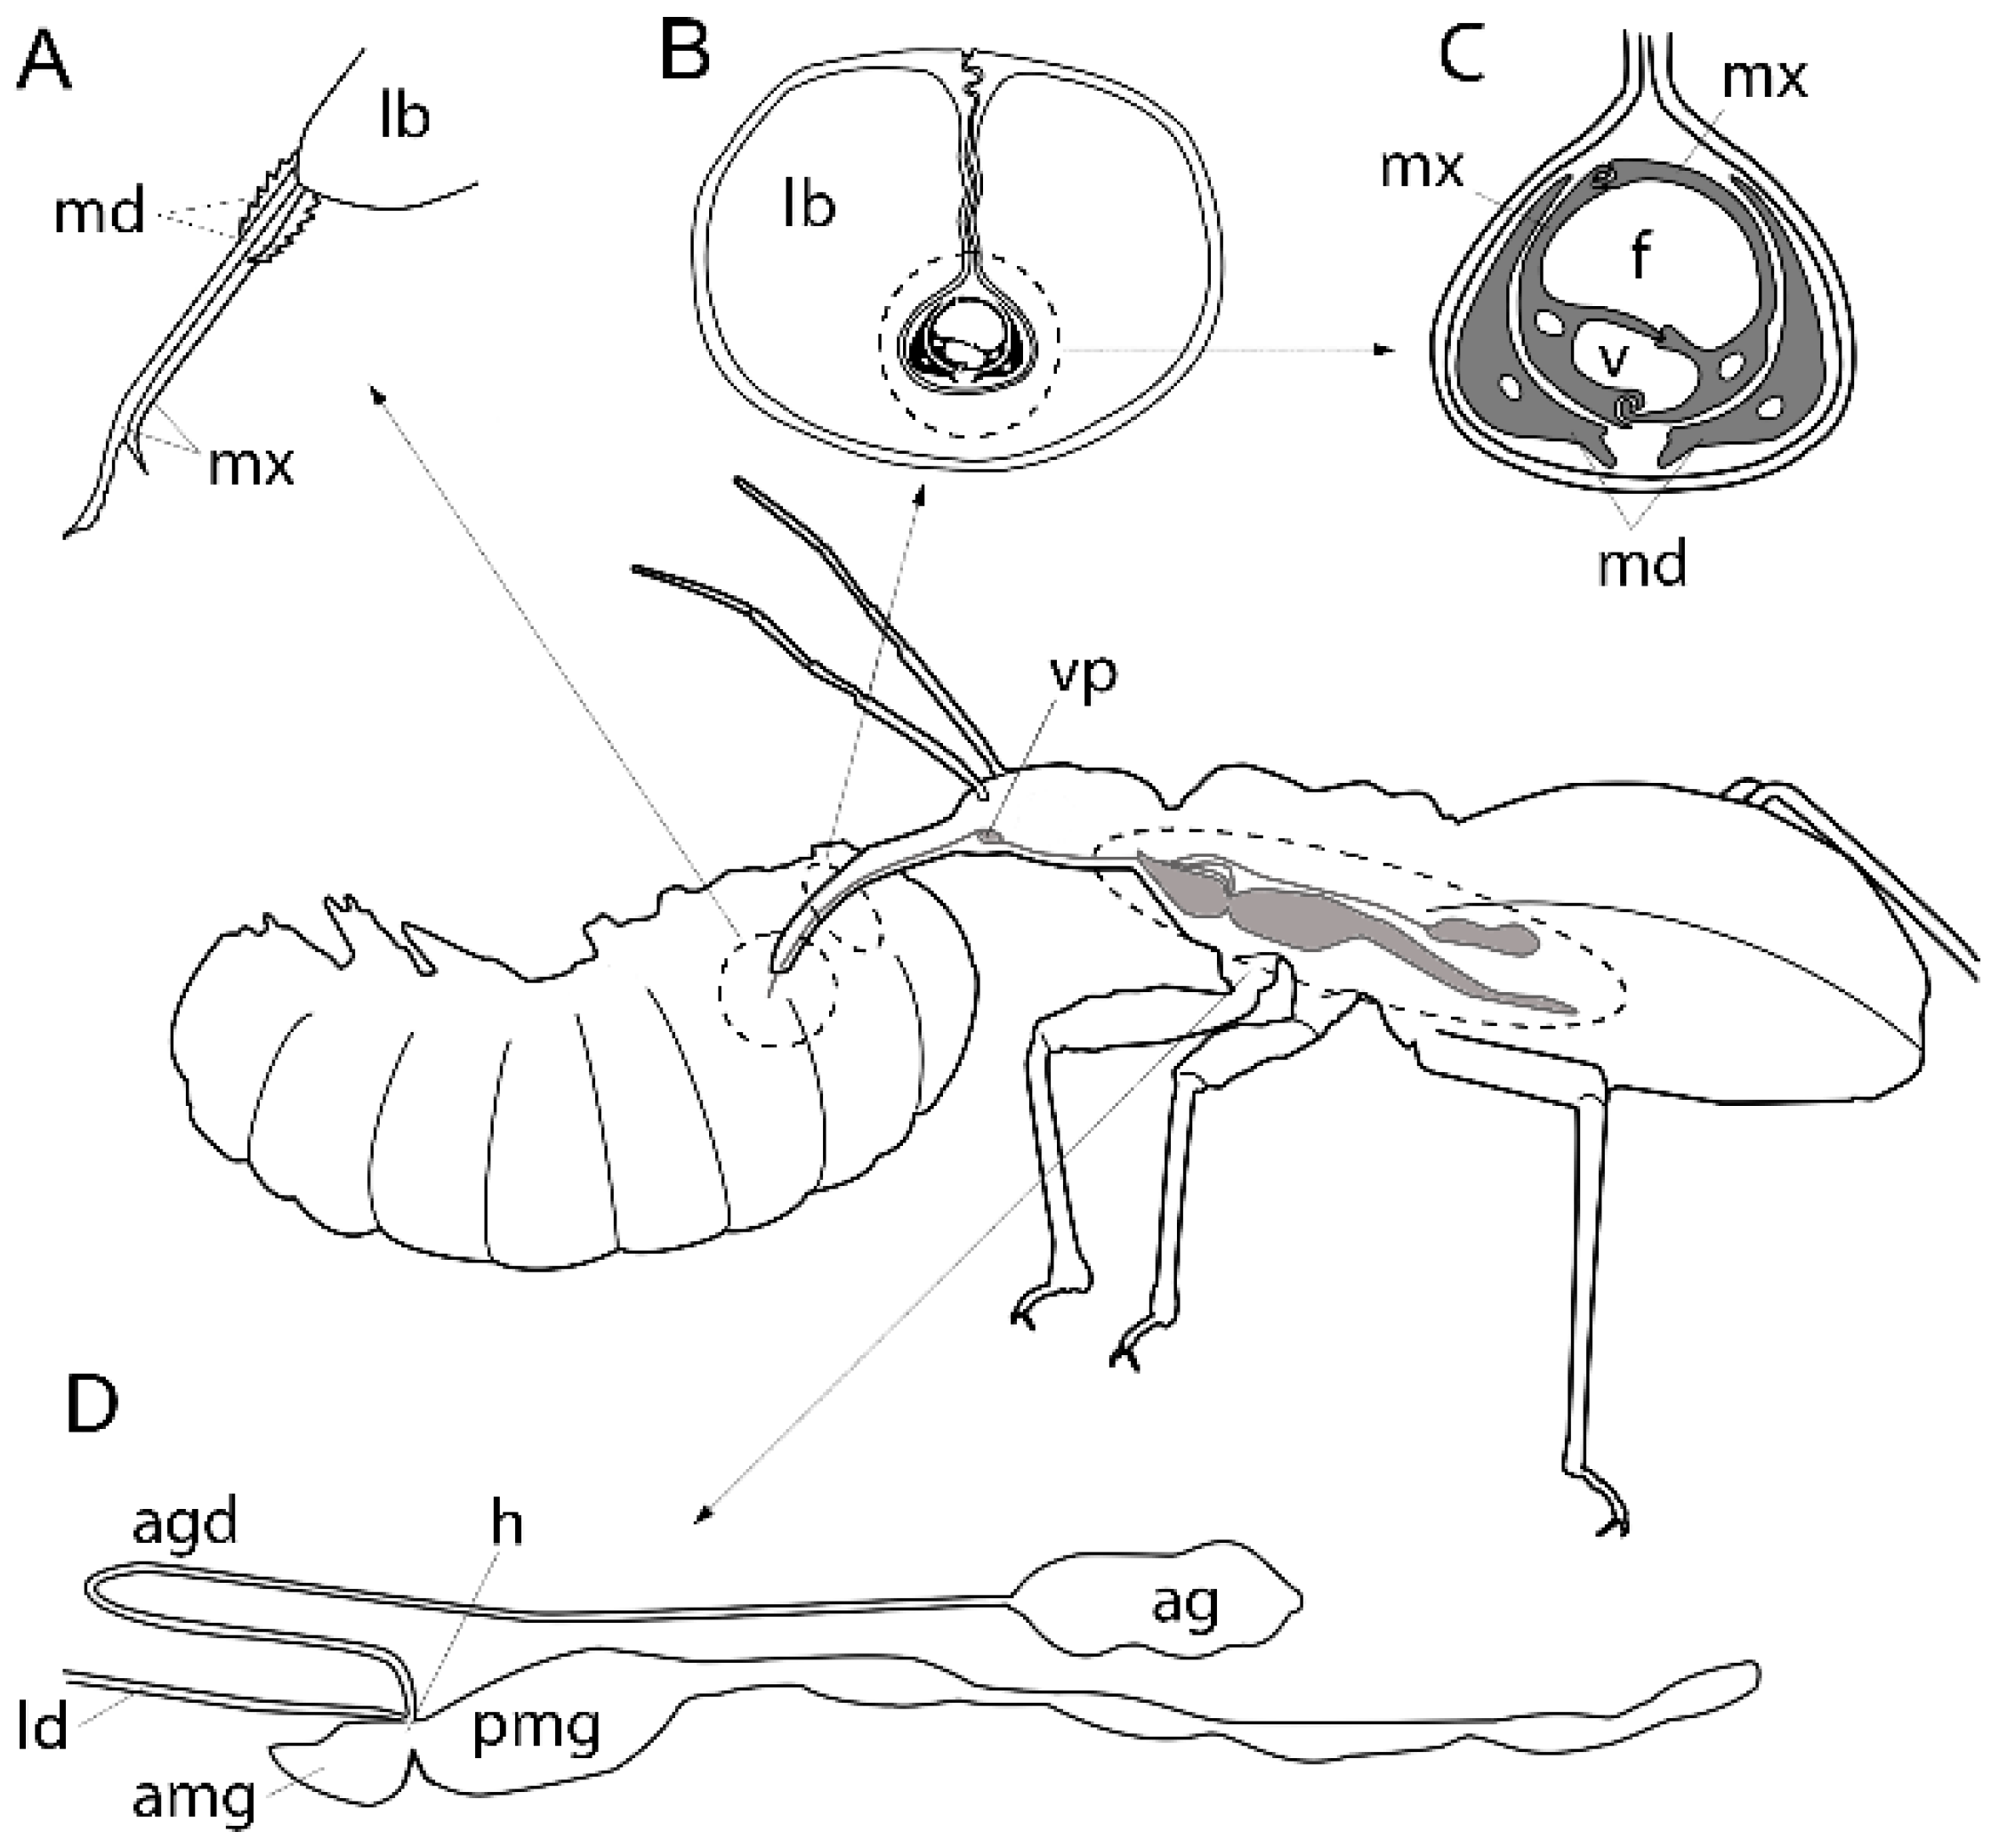 Toxins | Free Full-Text | Venoms of Heteropteran Insects: A Treasure ...